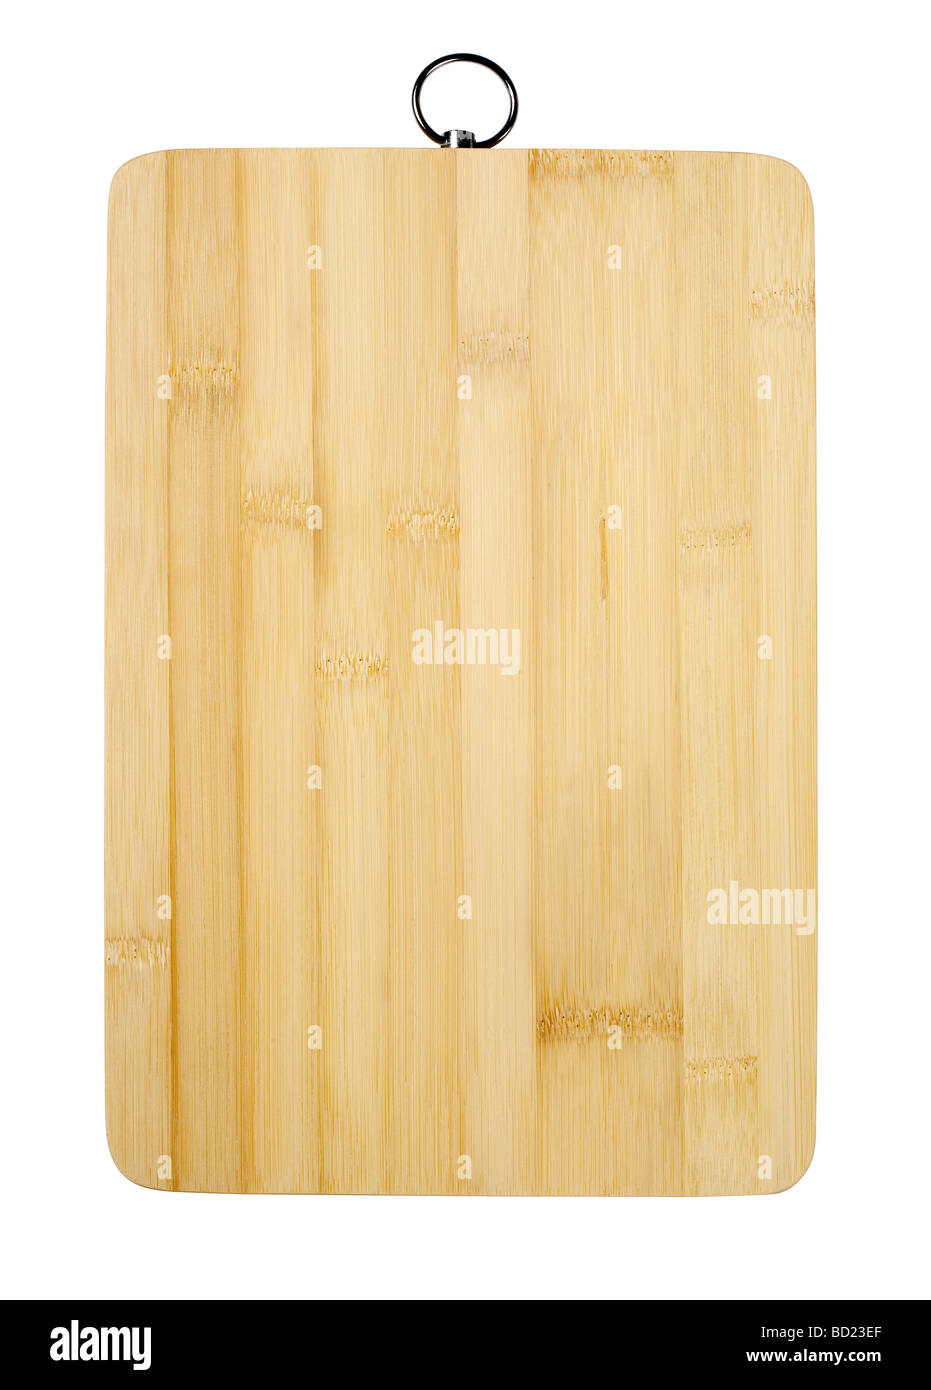 Bamboo cutting board - Stock Image